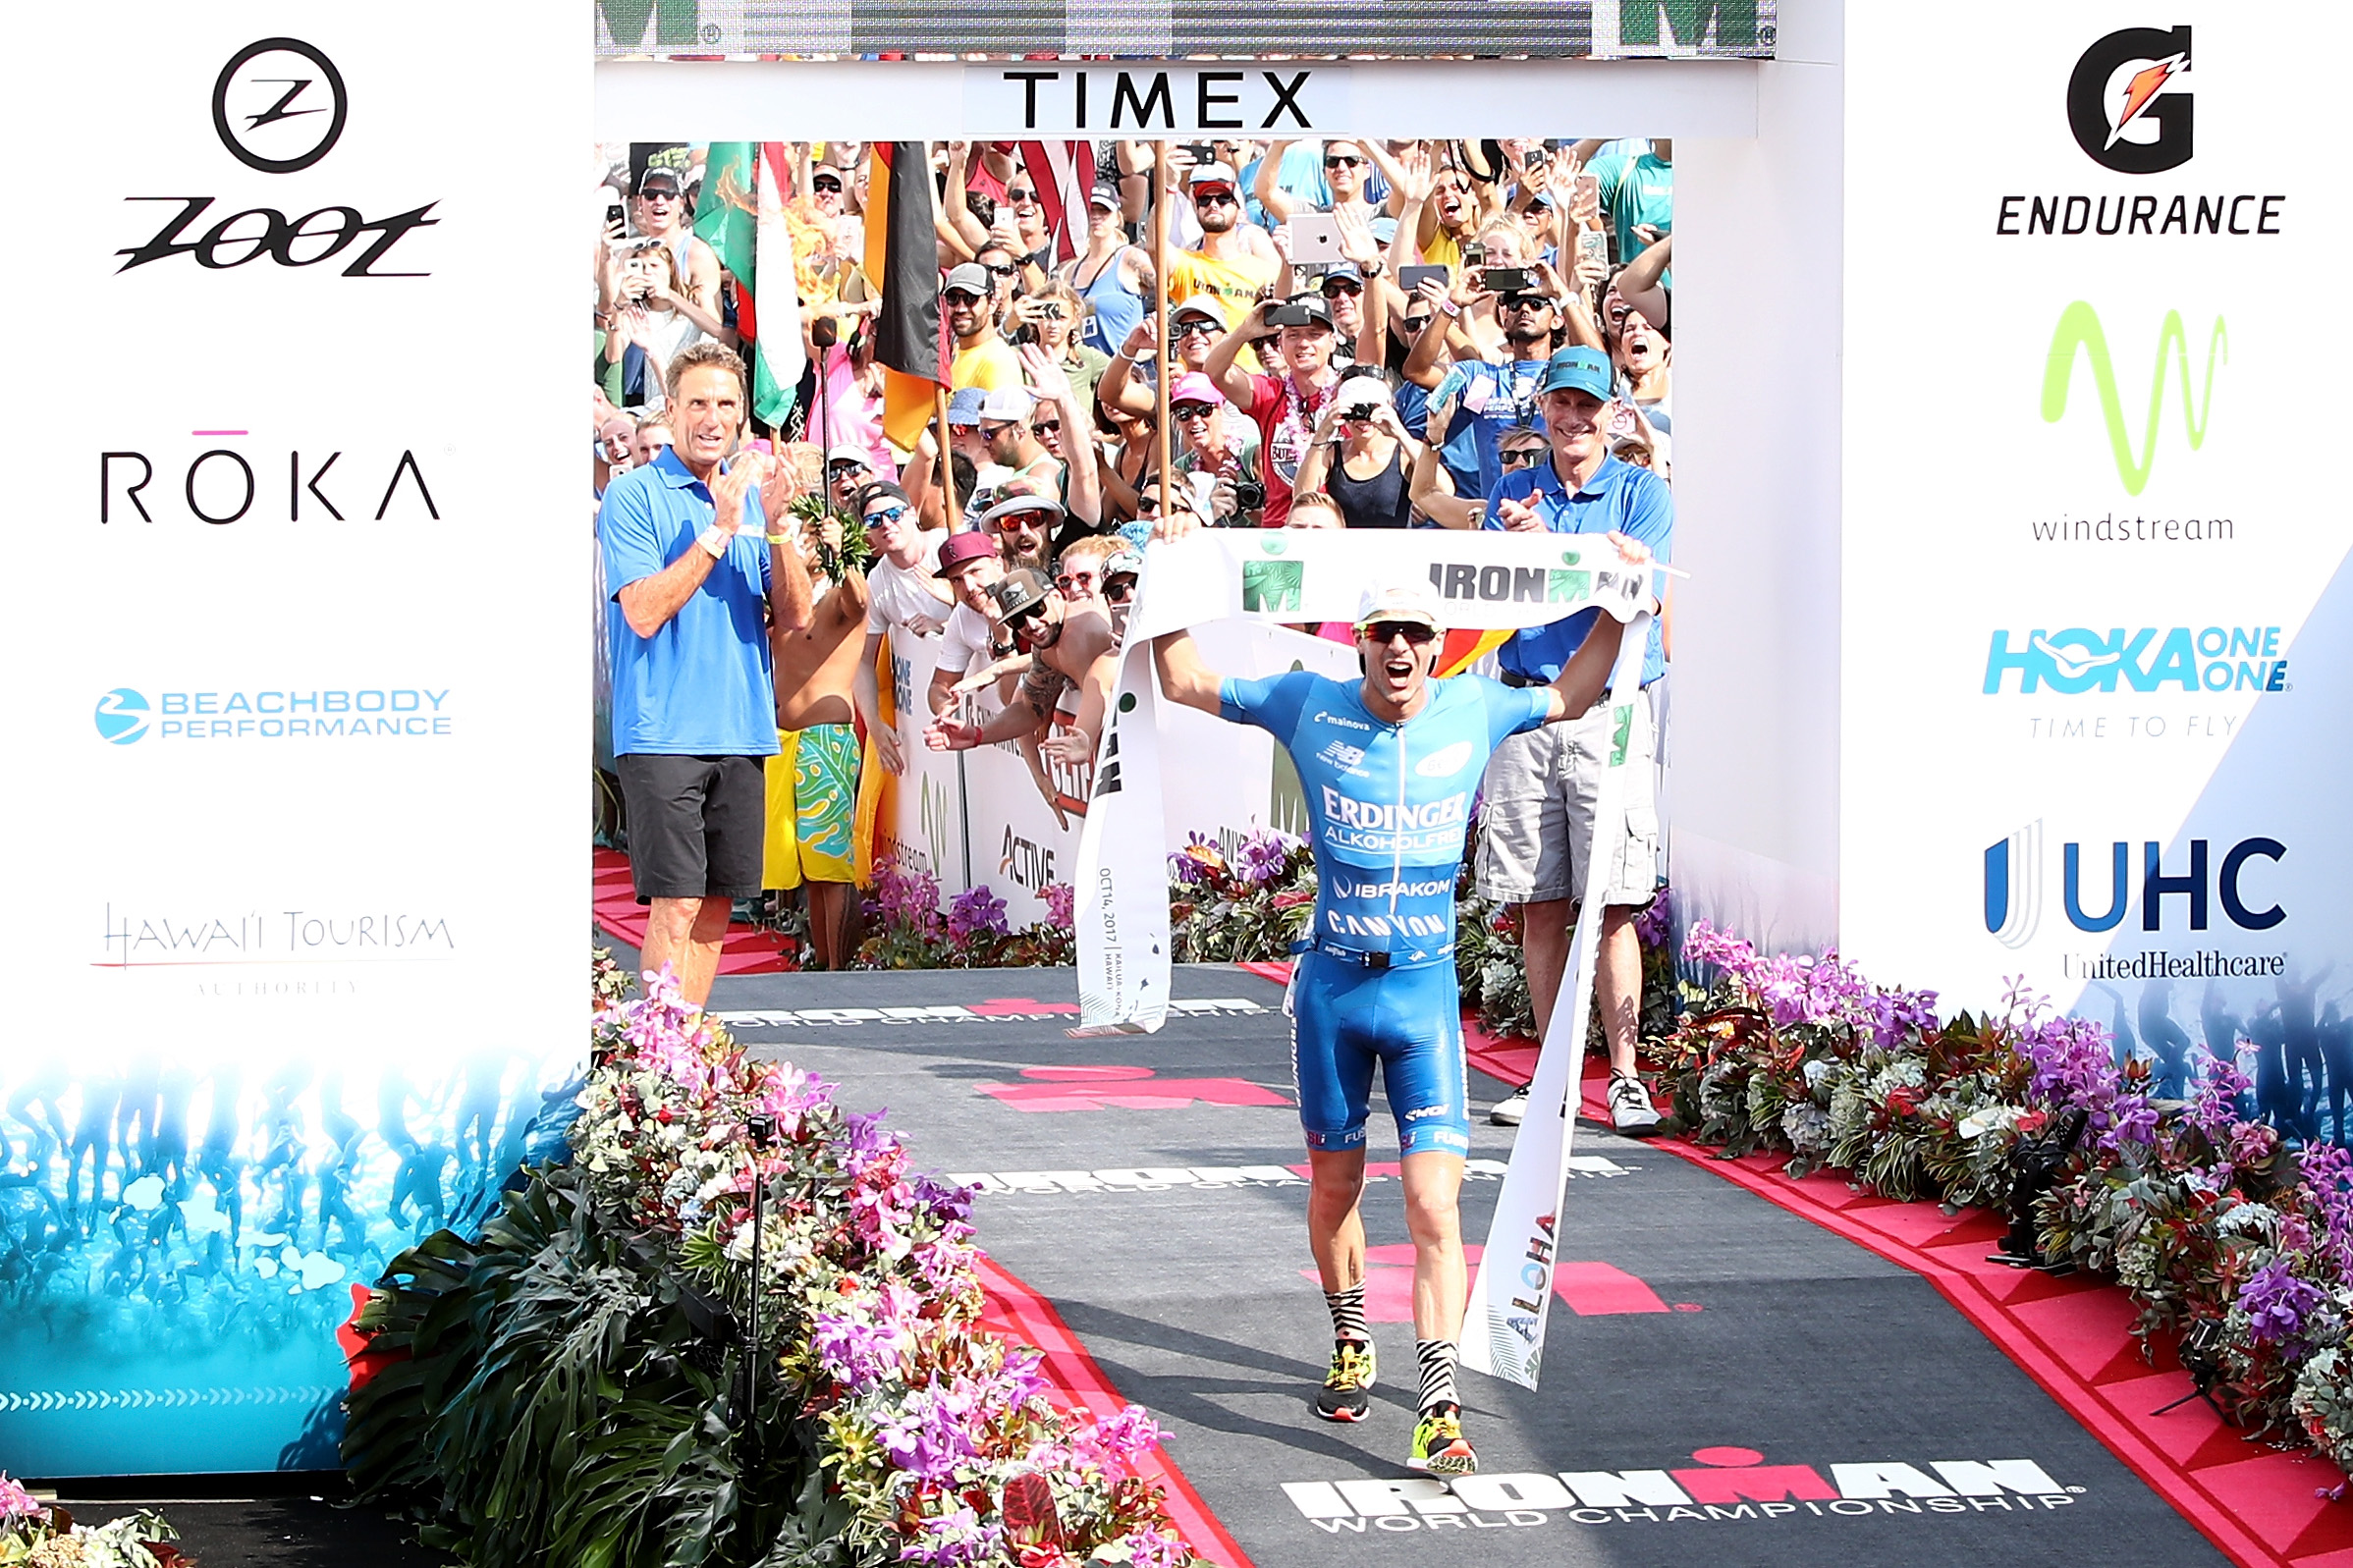 KAILUA KONA, HI - OCTOBER 14:  Patrick Lange of Germany celebrates afer winning the IRONMAN World Championship and setting a course record of 8:01.39 beating Craig Alexander's 2011 record of 8:03.56 on October 14, 2017 in Kailua Kona, Hawaii.  (Photo by Maxx Wolfson/Getty Images for IRONMAN)